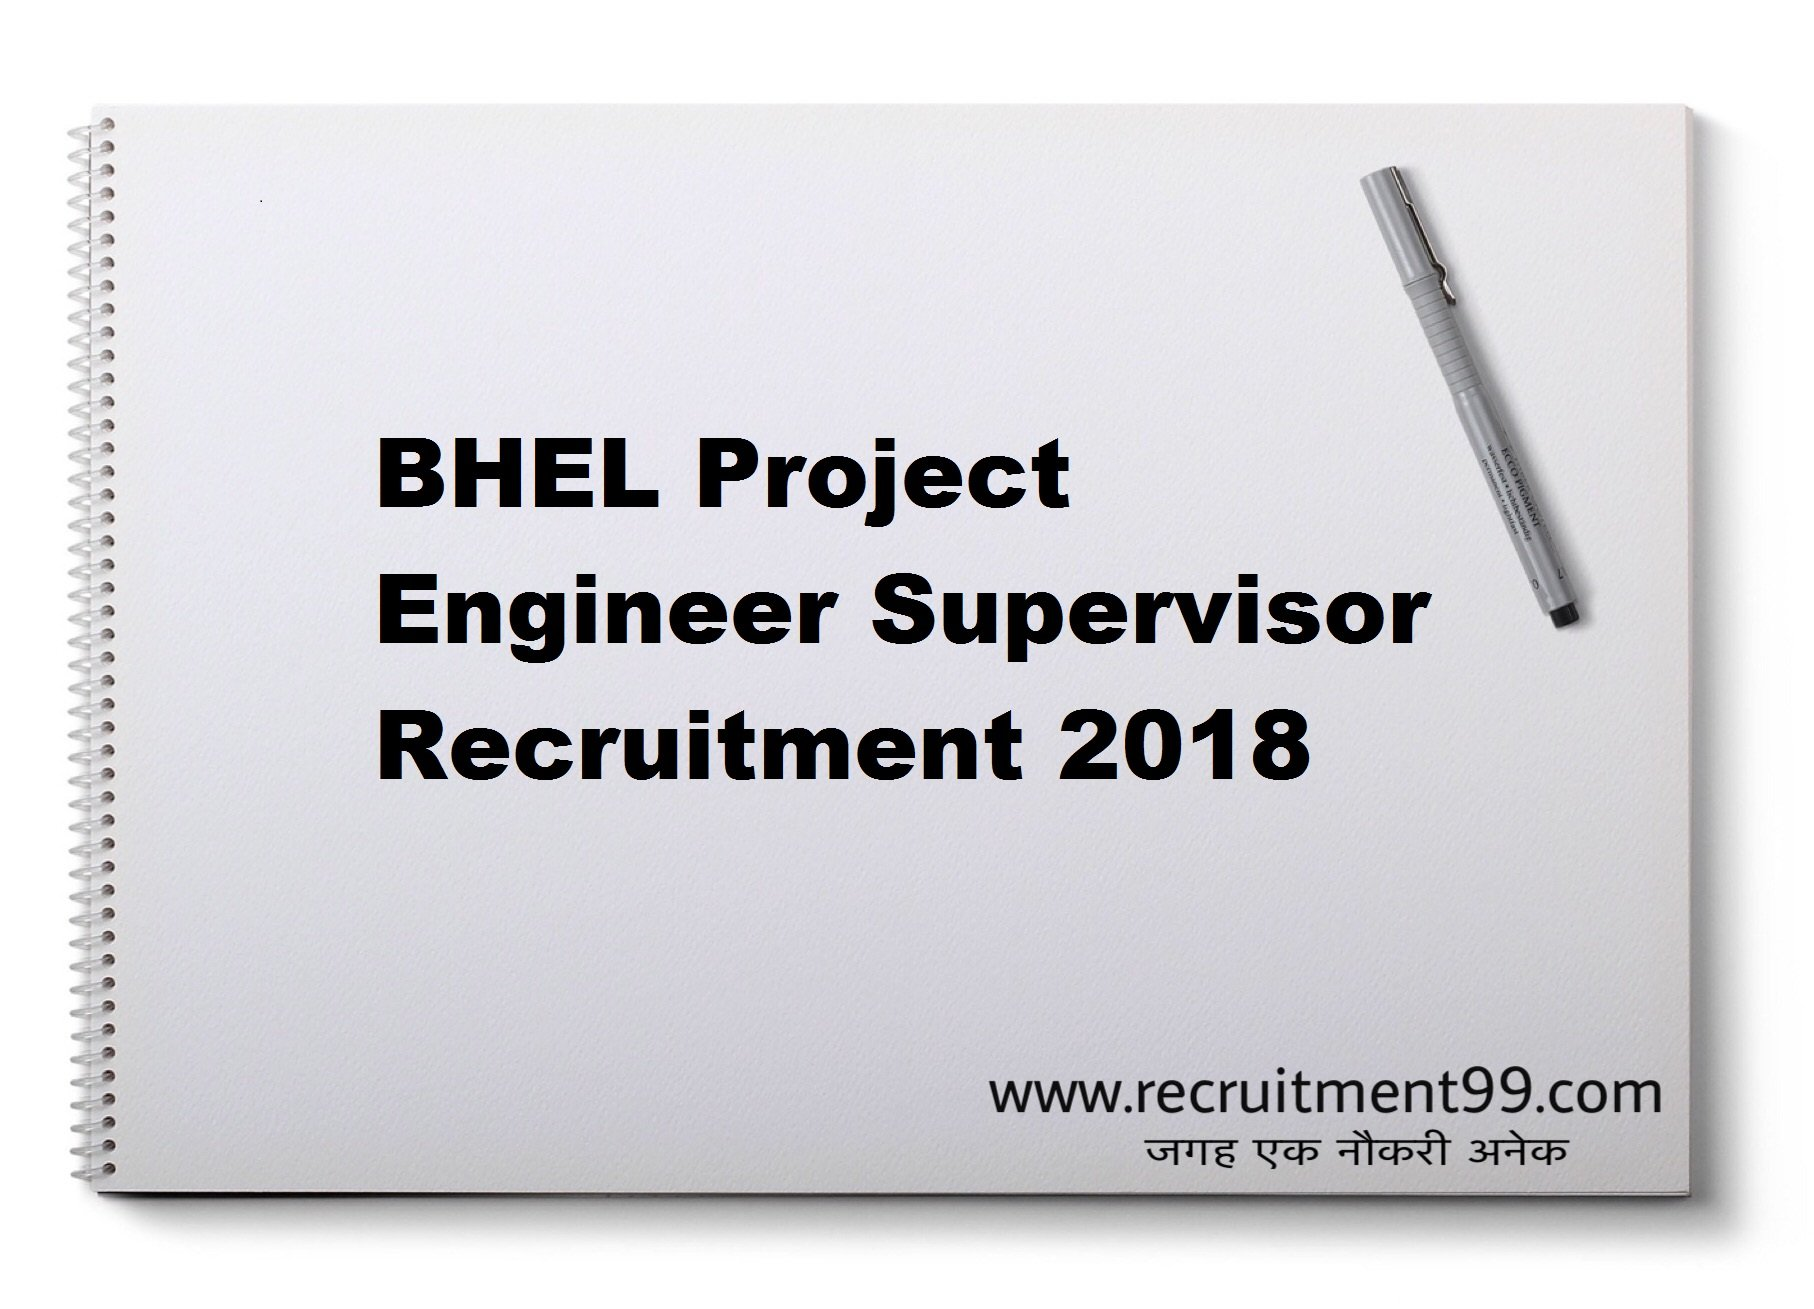 BHEL Project Engineer Supervisor Recruitment Hall Ticket Result 2018